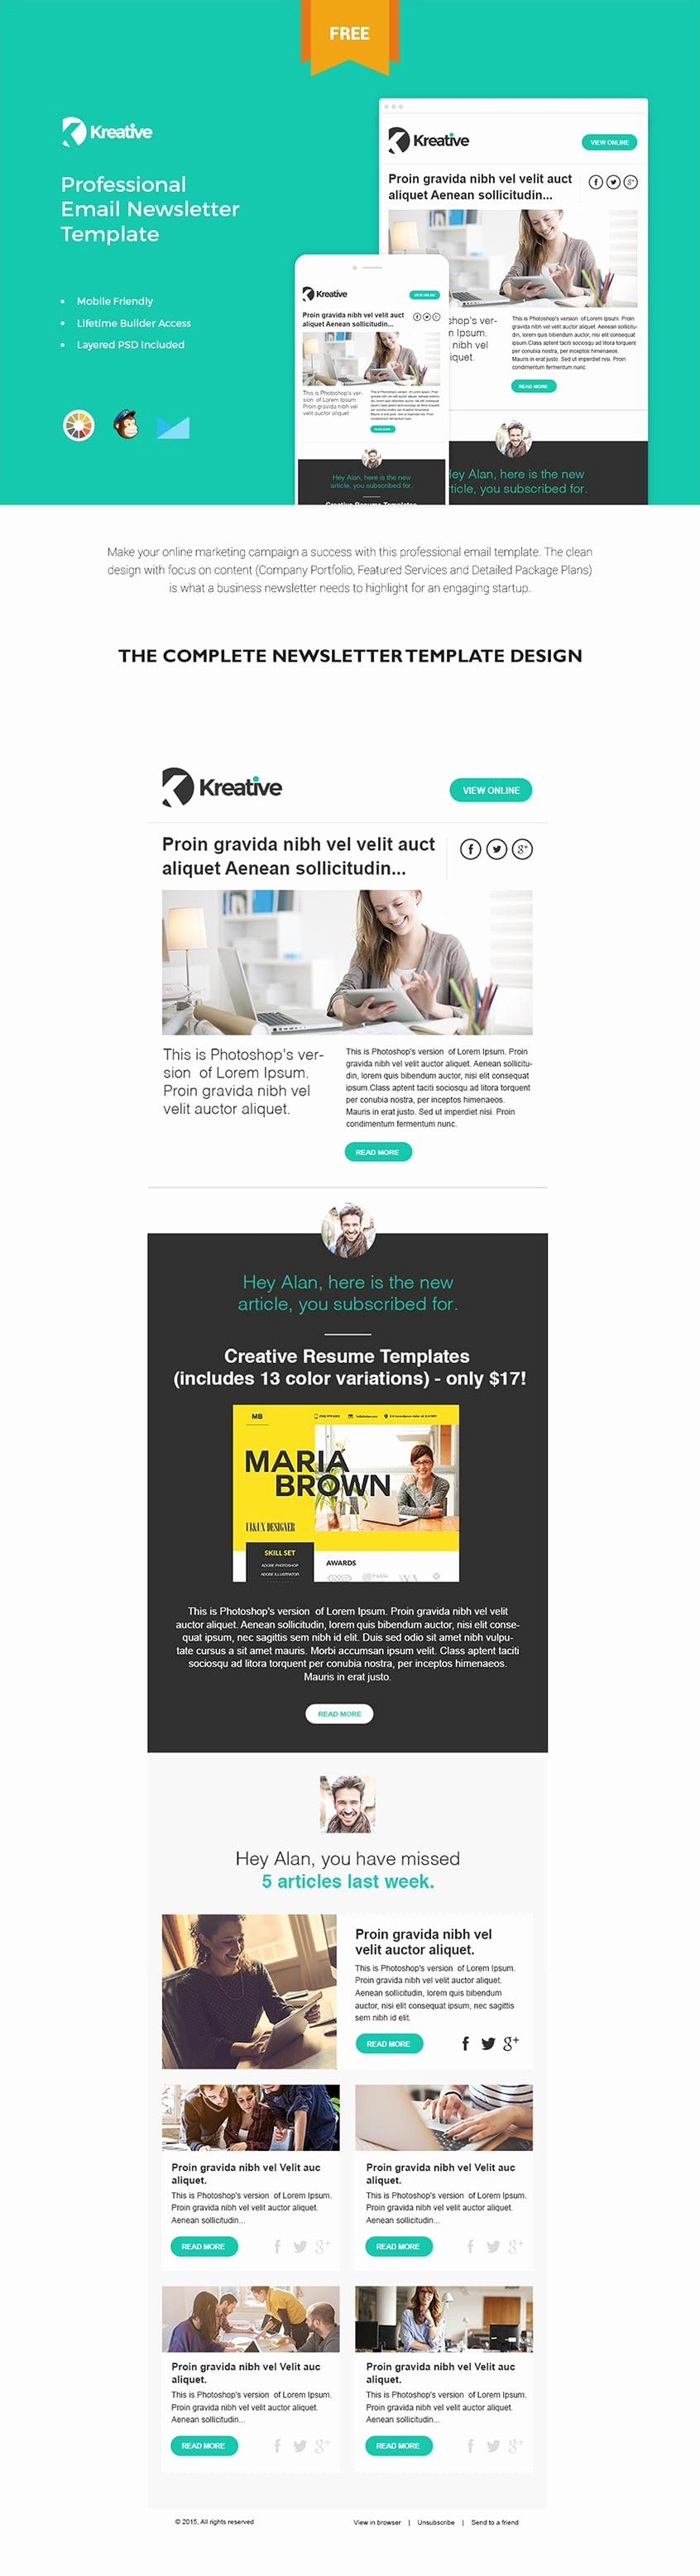 Free Email Template Psd Beautiful Free Email Newsletter Templates Psd Css Author